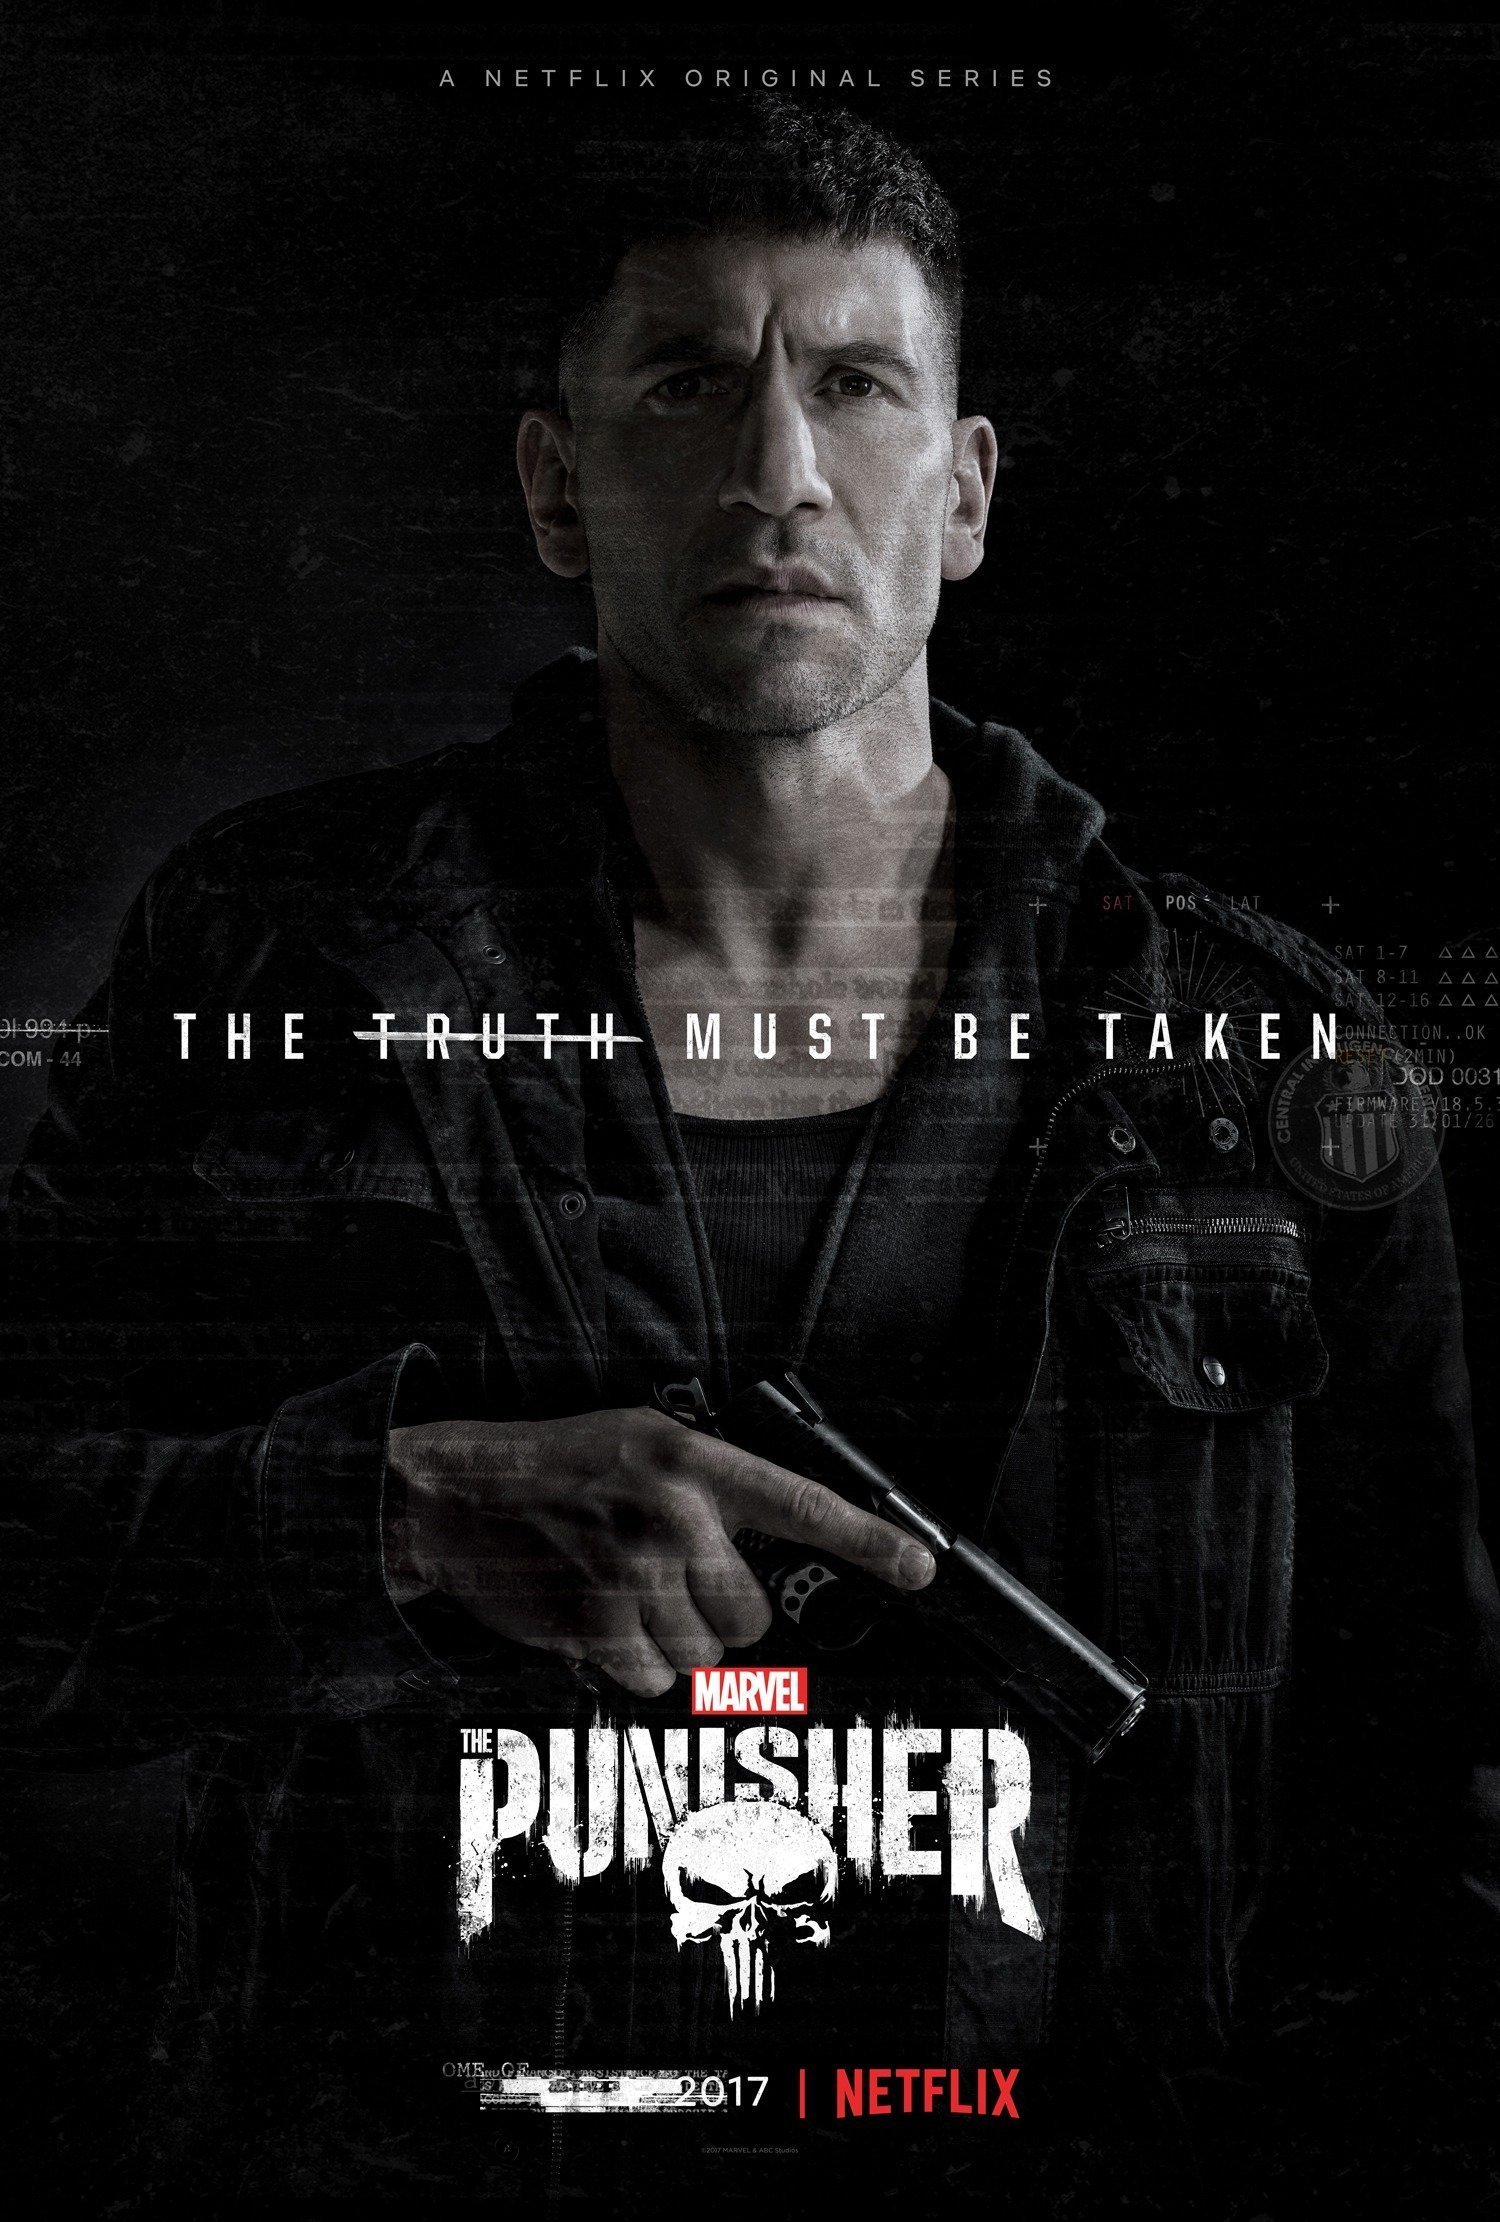 Poster de la saison 1 de la série Marvel/Netflix, The Punisher